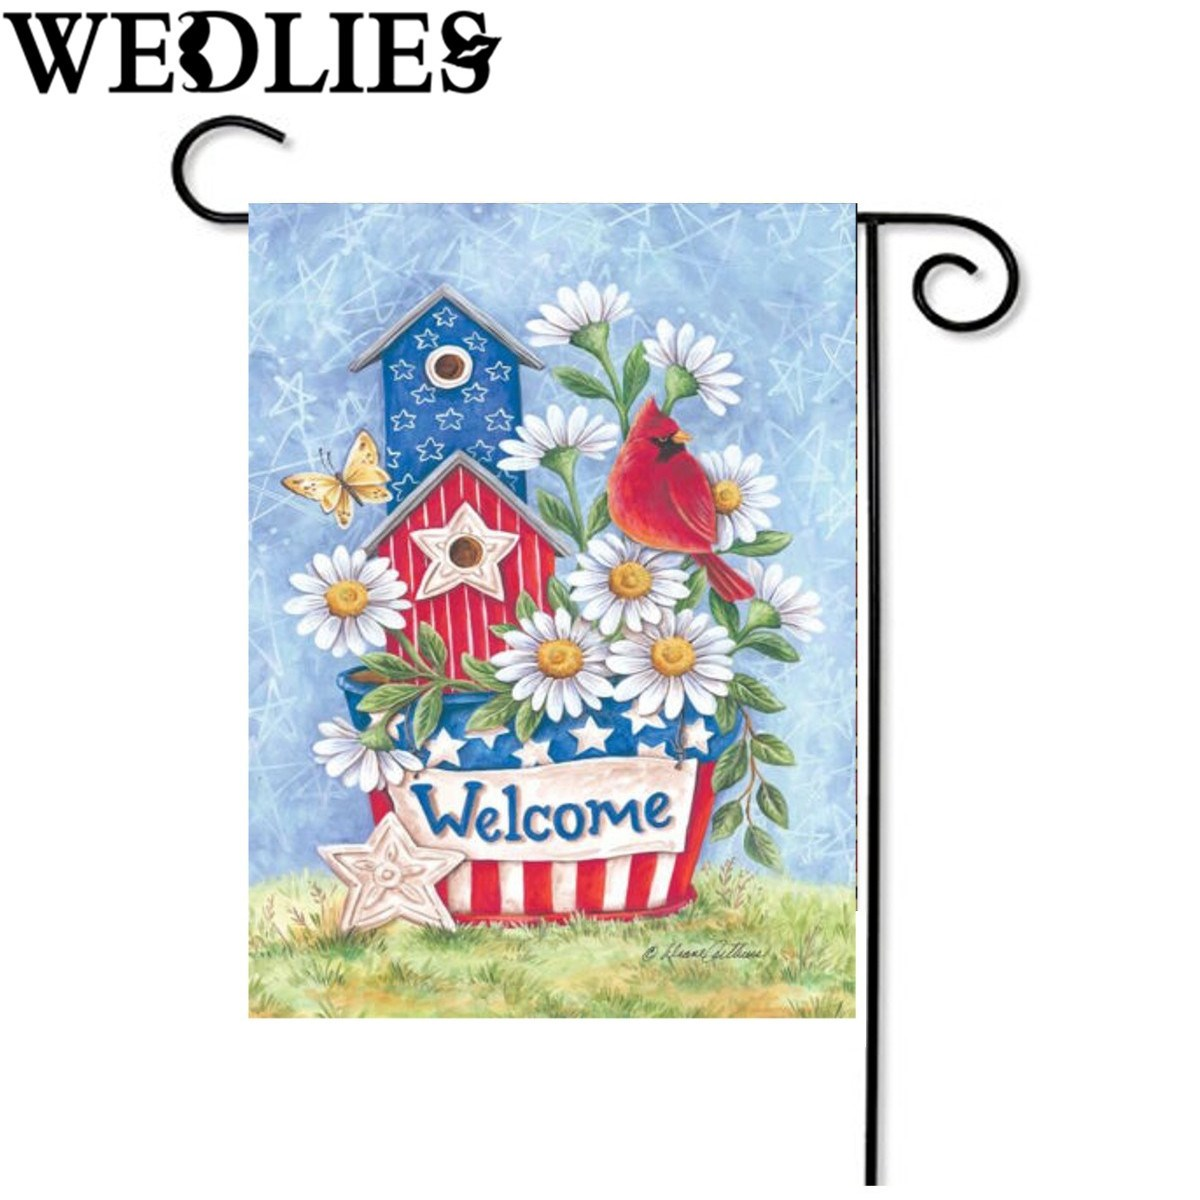 Blossom Daisies Flag Patriotic Cardinal Welcome Home Garden Flag Banner  Accessories Home Garden Decorative Craftwork 12.5